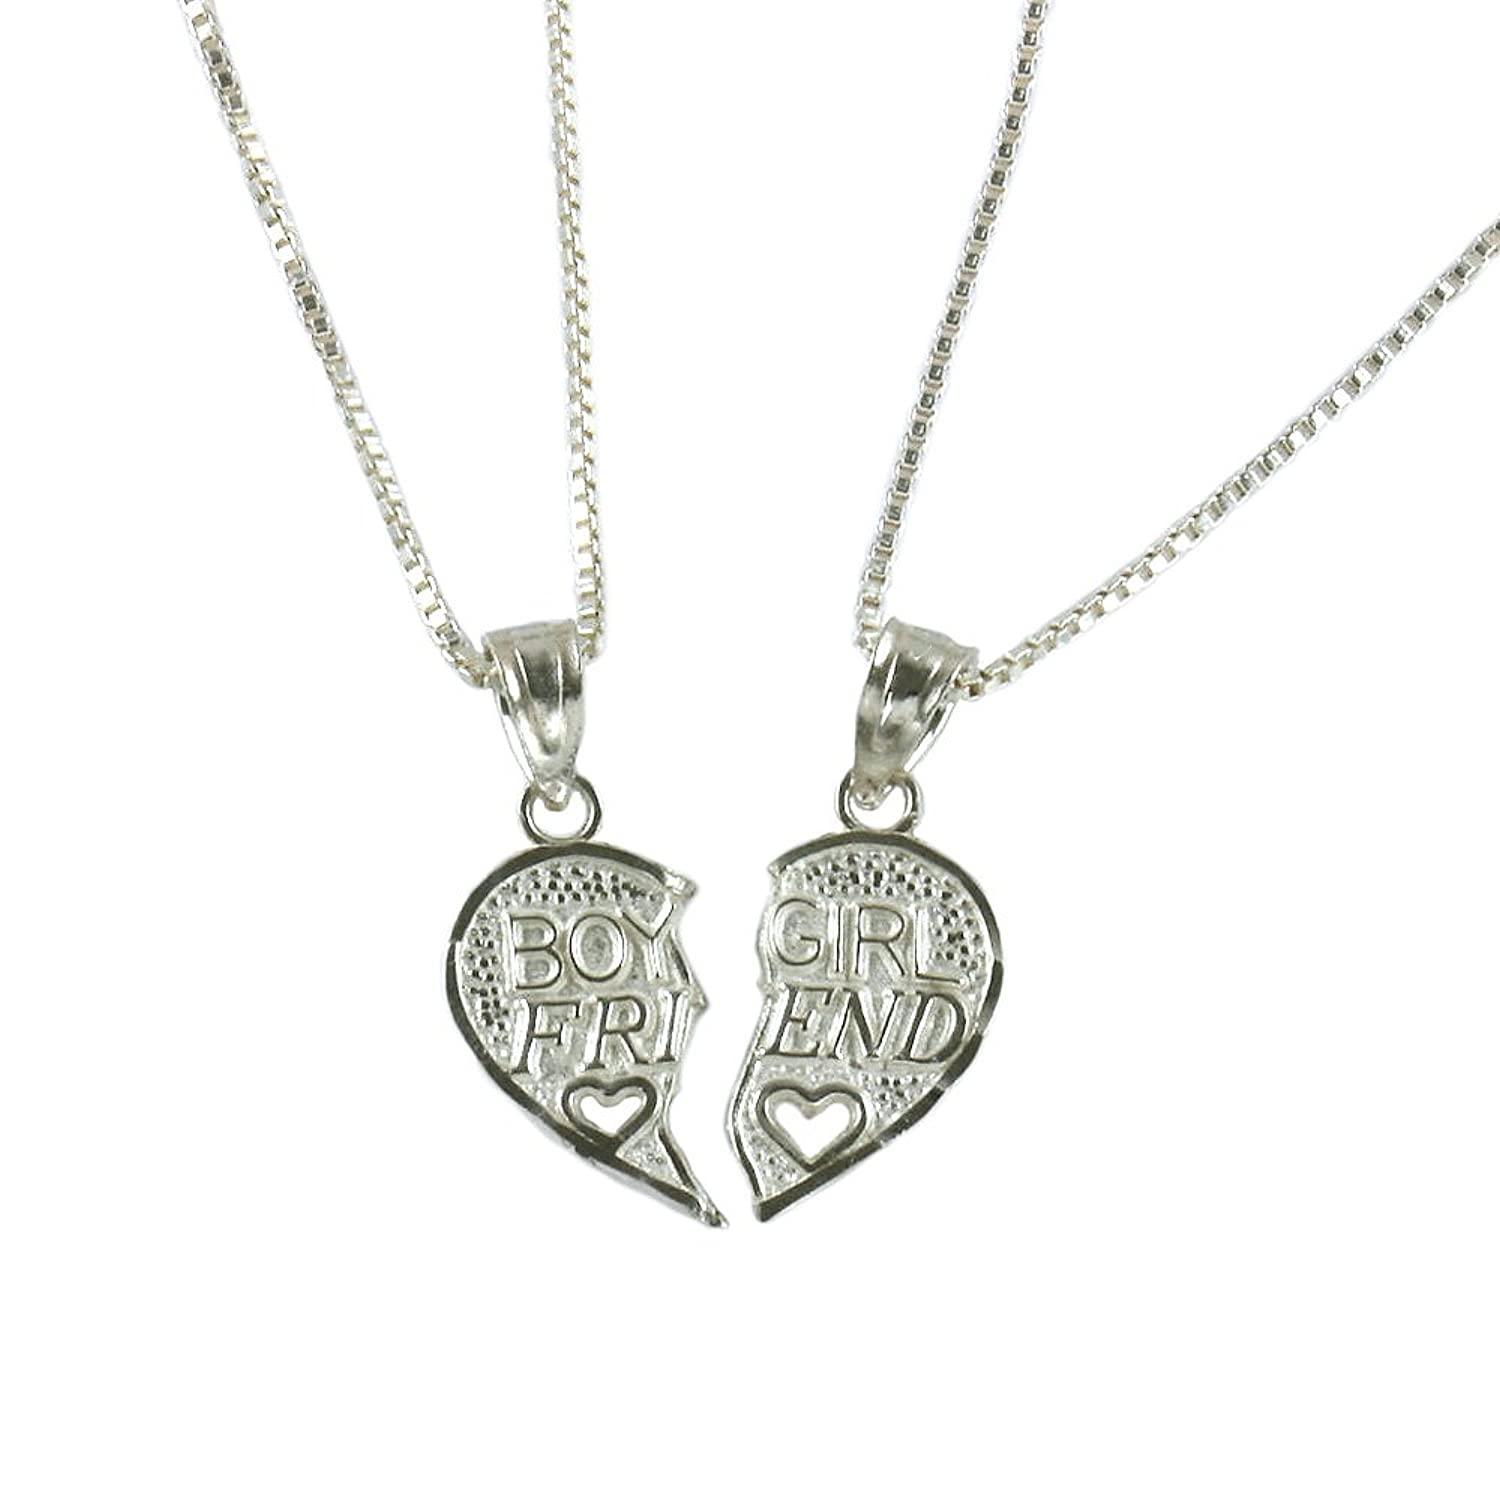 sgd splitheart steel jewelry friend split best stainless lockets necklaces necklace bling bff heart enamel